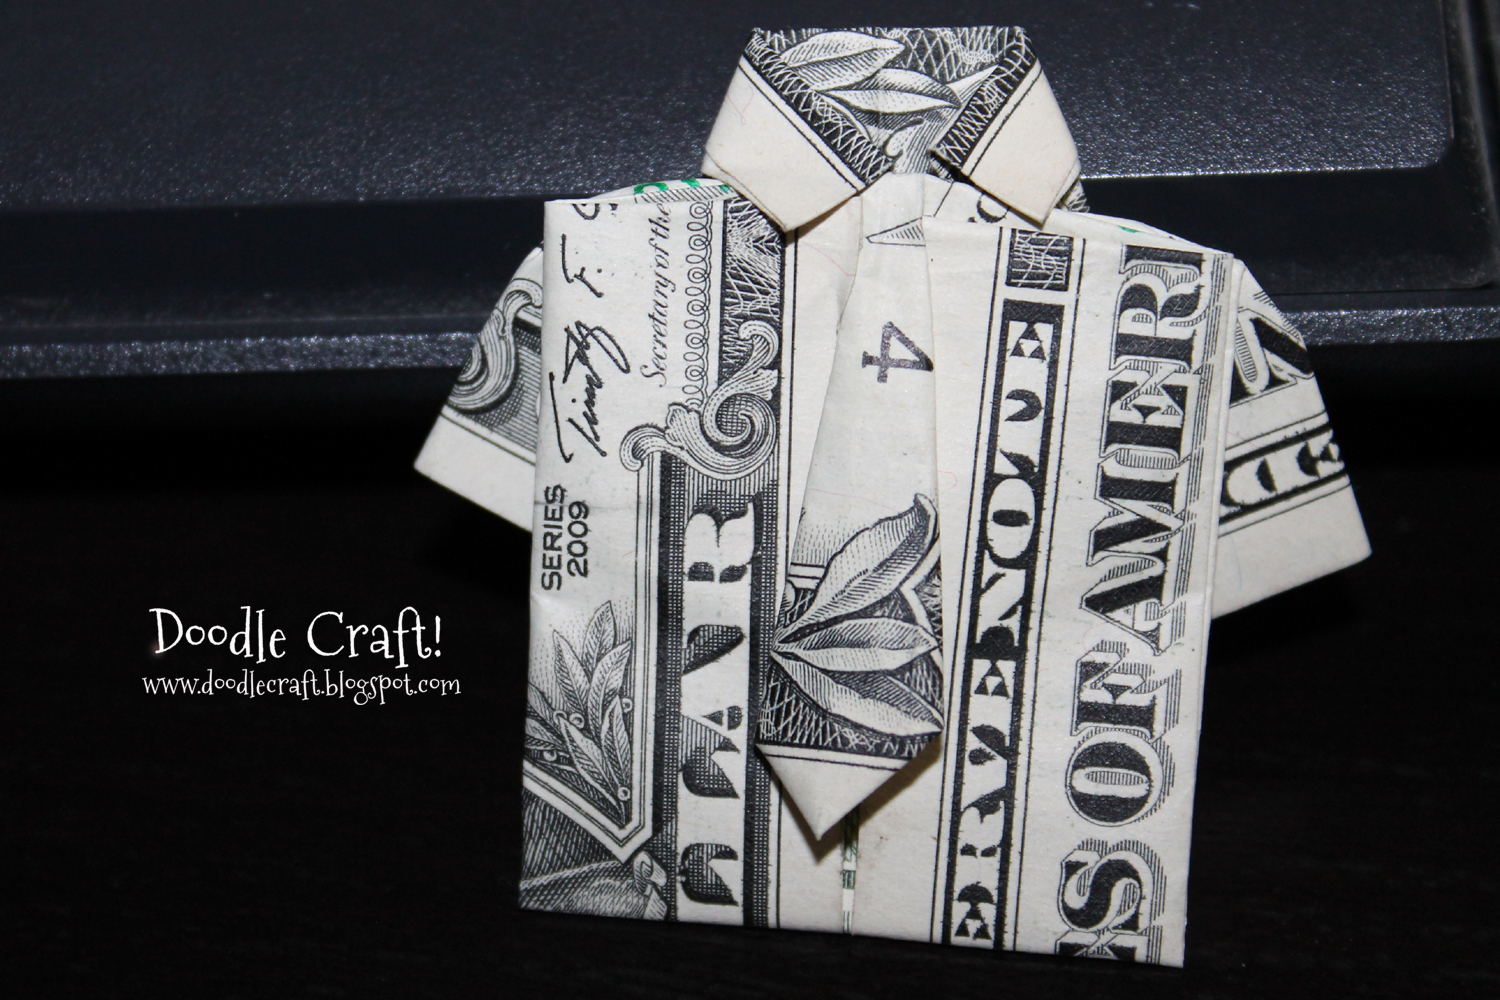 Doodlecraft: Origami Money folding: Shirt and Tie! - photo#12